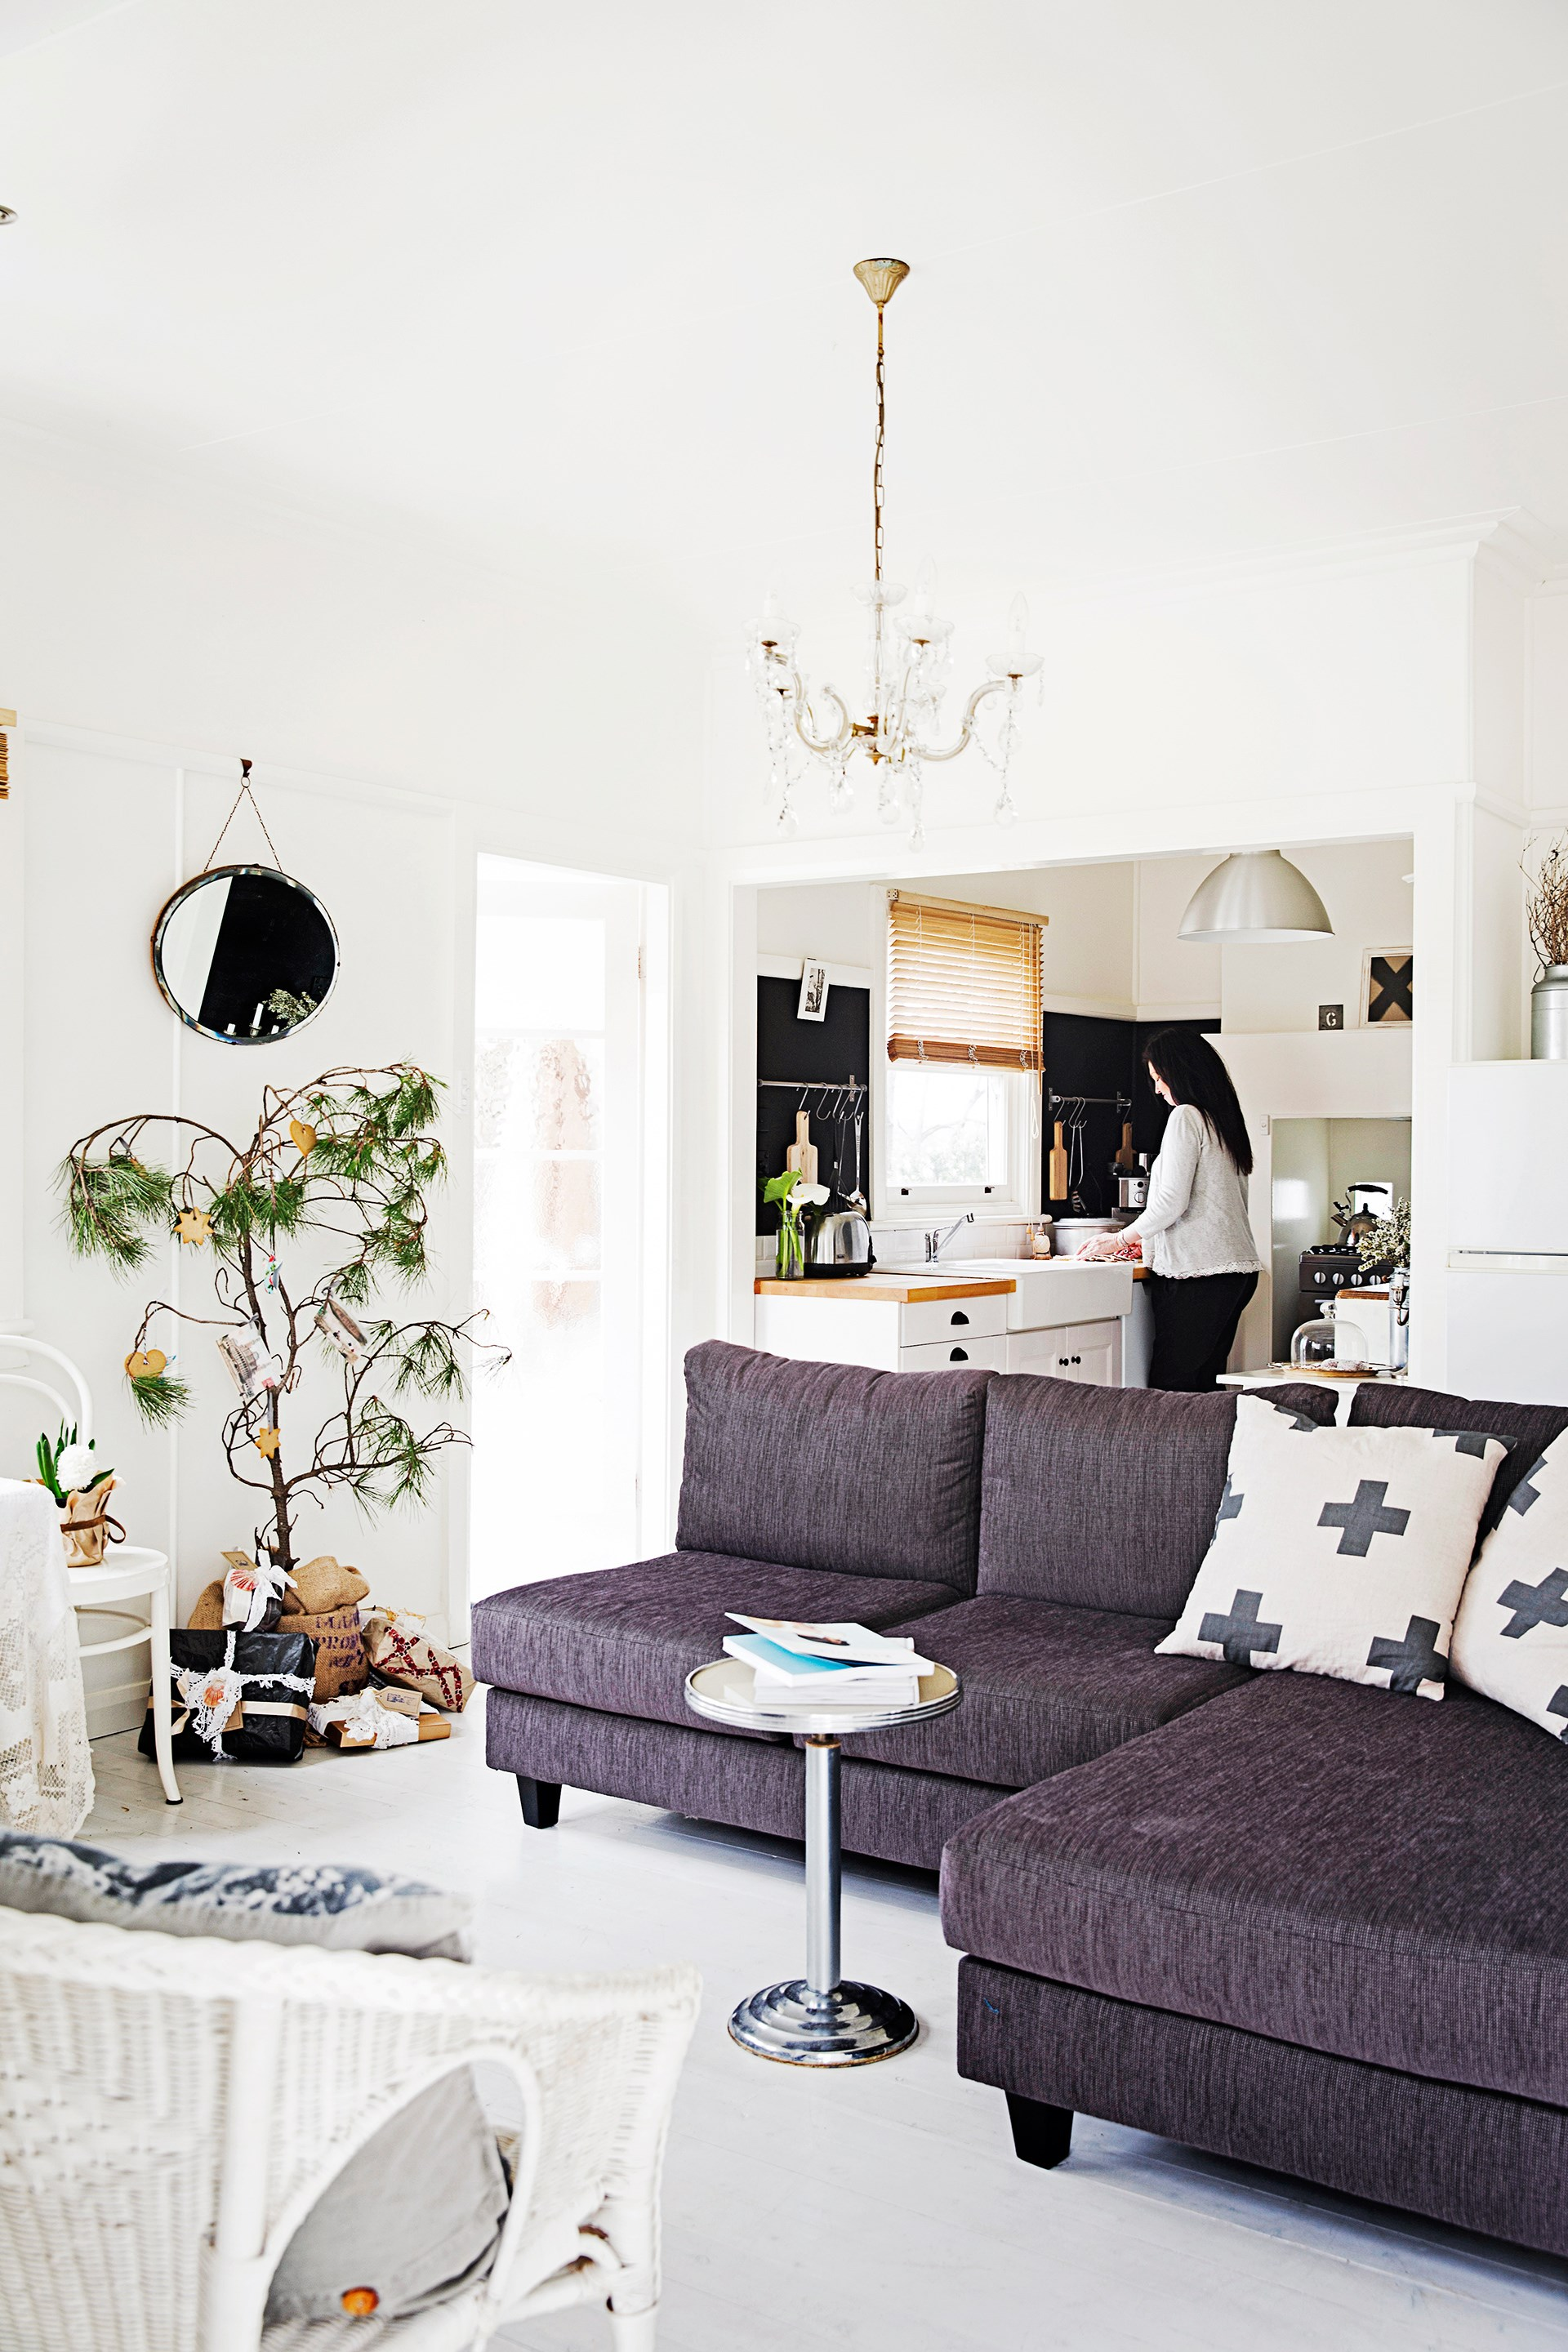 """Escape to [Beth and Warren's relaxed beach house](http://www.homestolove.com.au/gallery-beth-and-warrens-idyllic-beach-house-renovation-2529